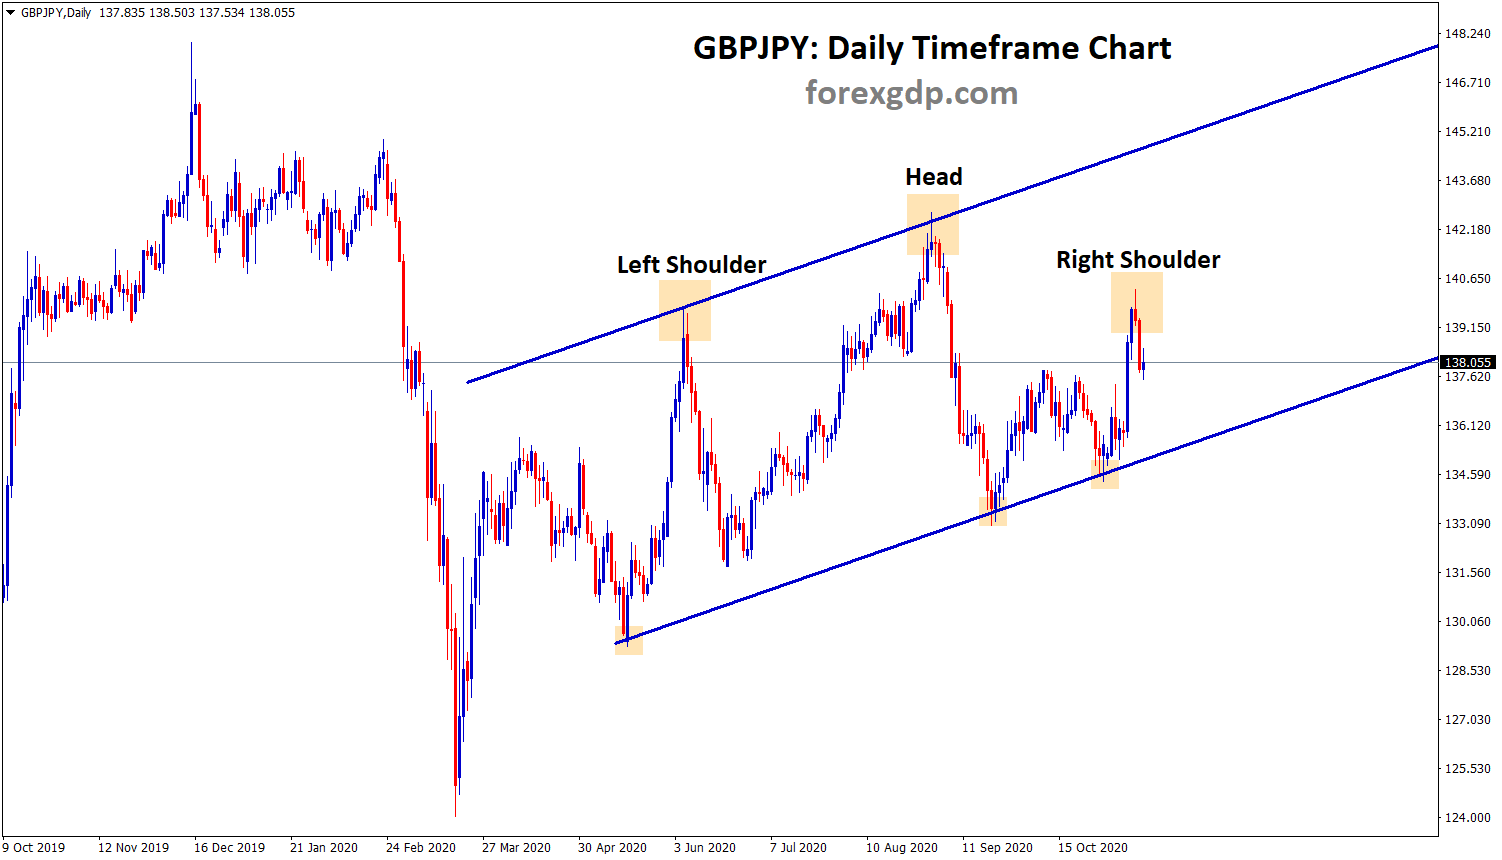 gbpjpy head and shoulder